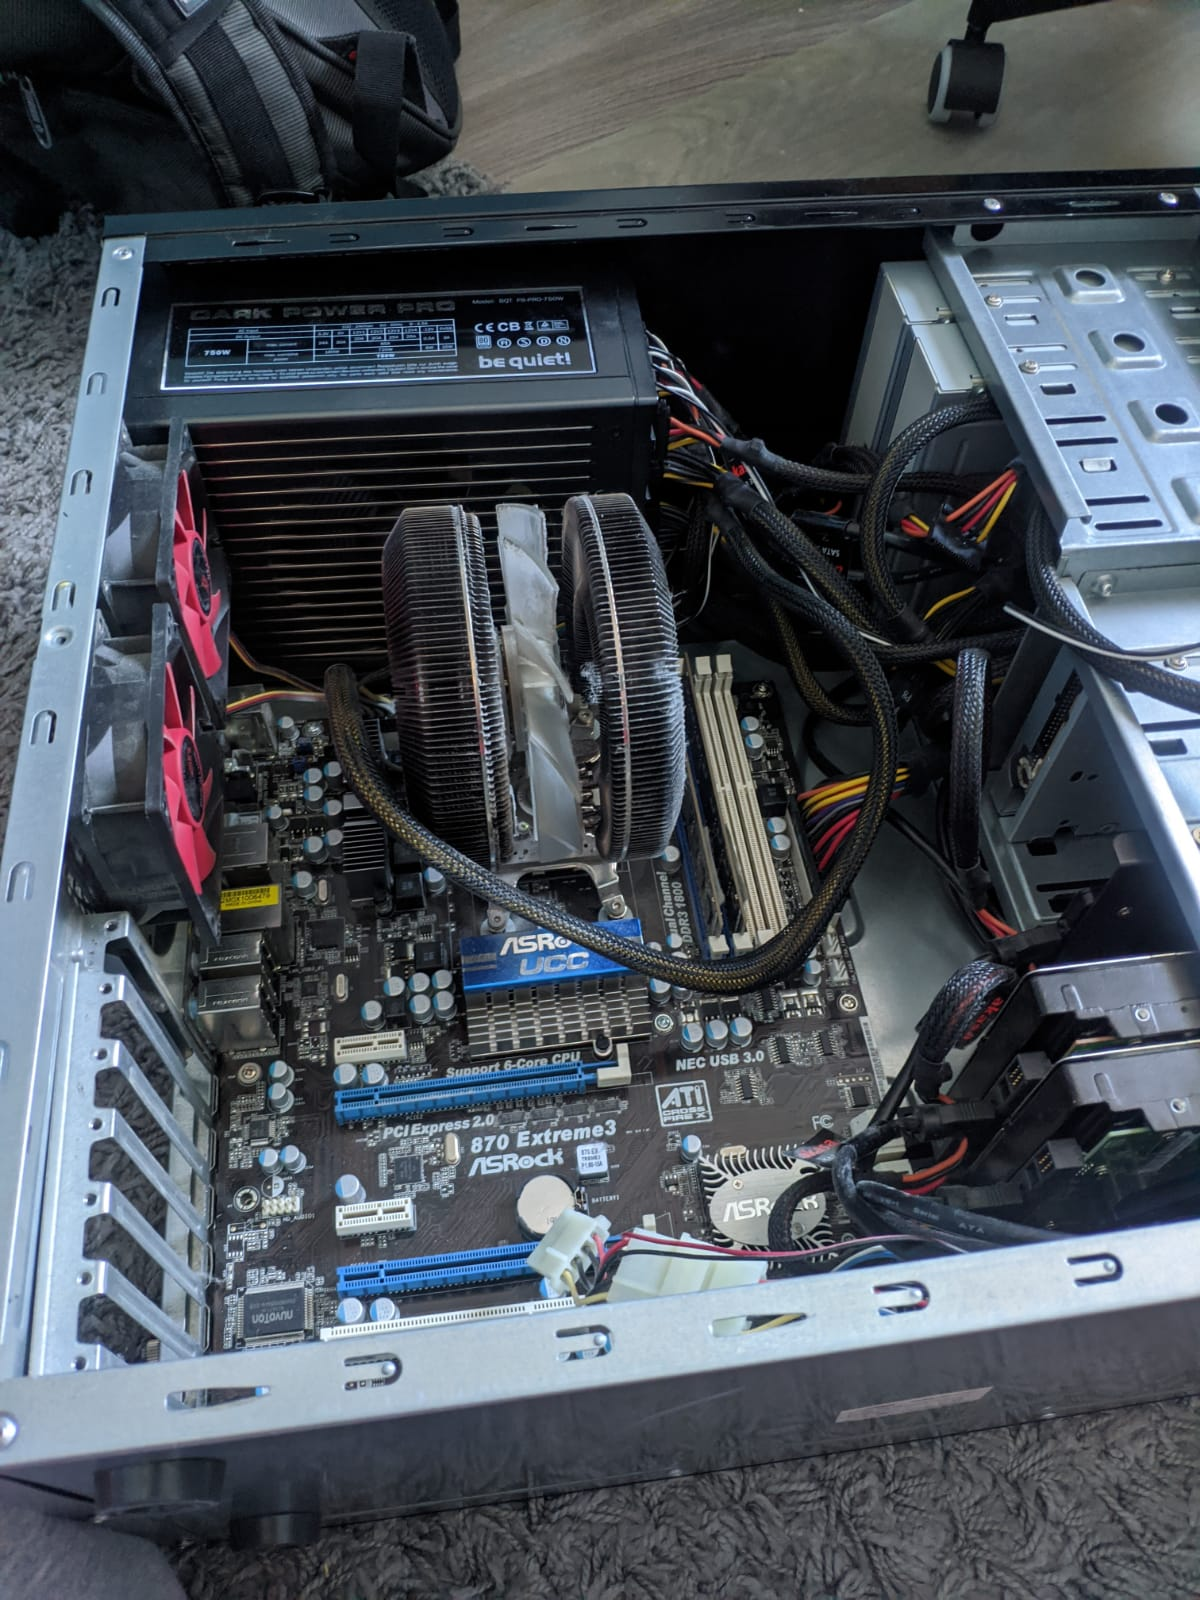 My old PC